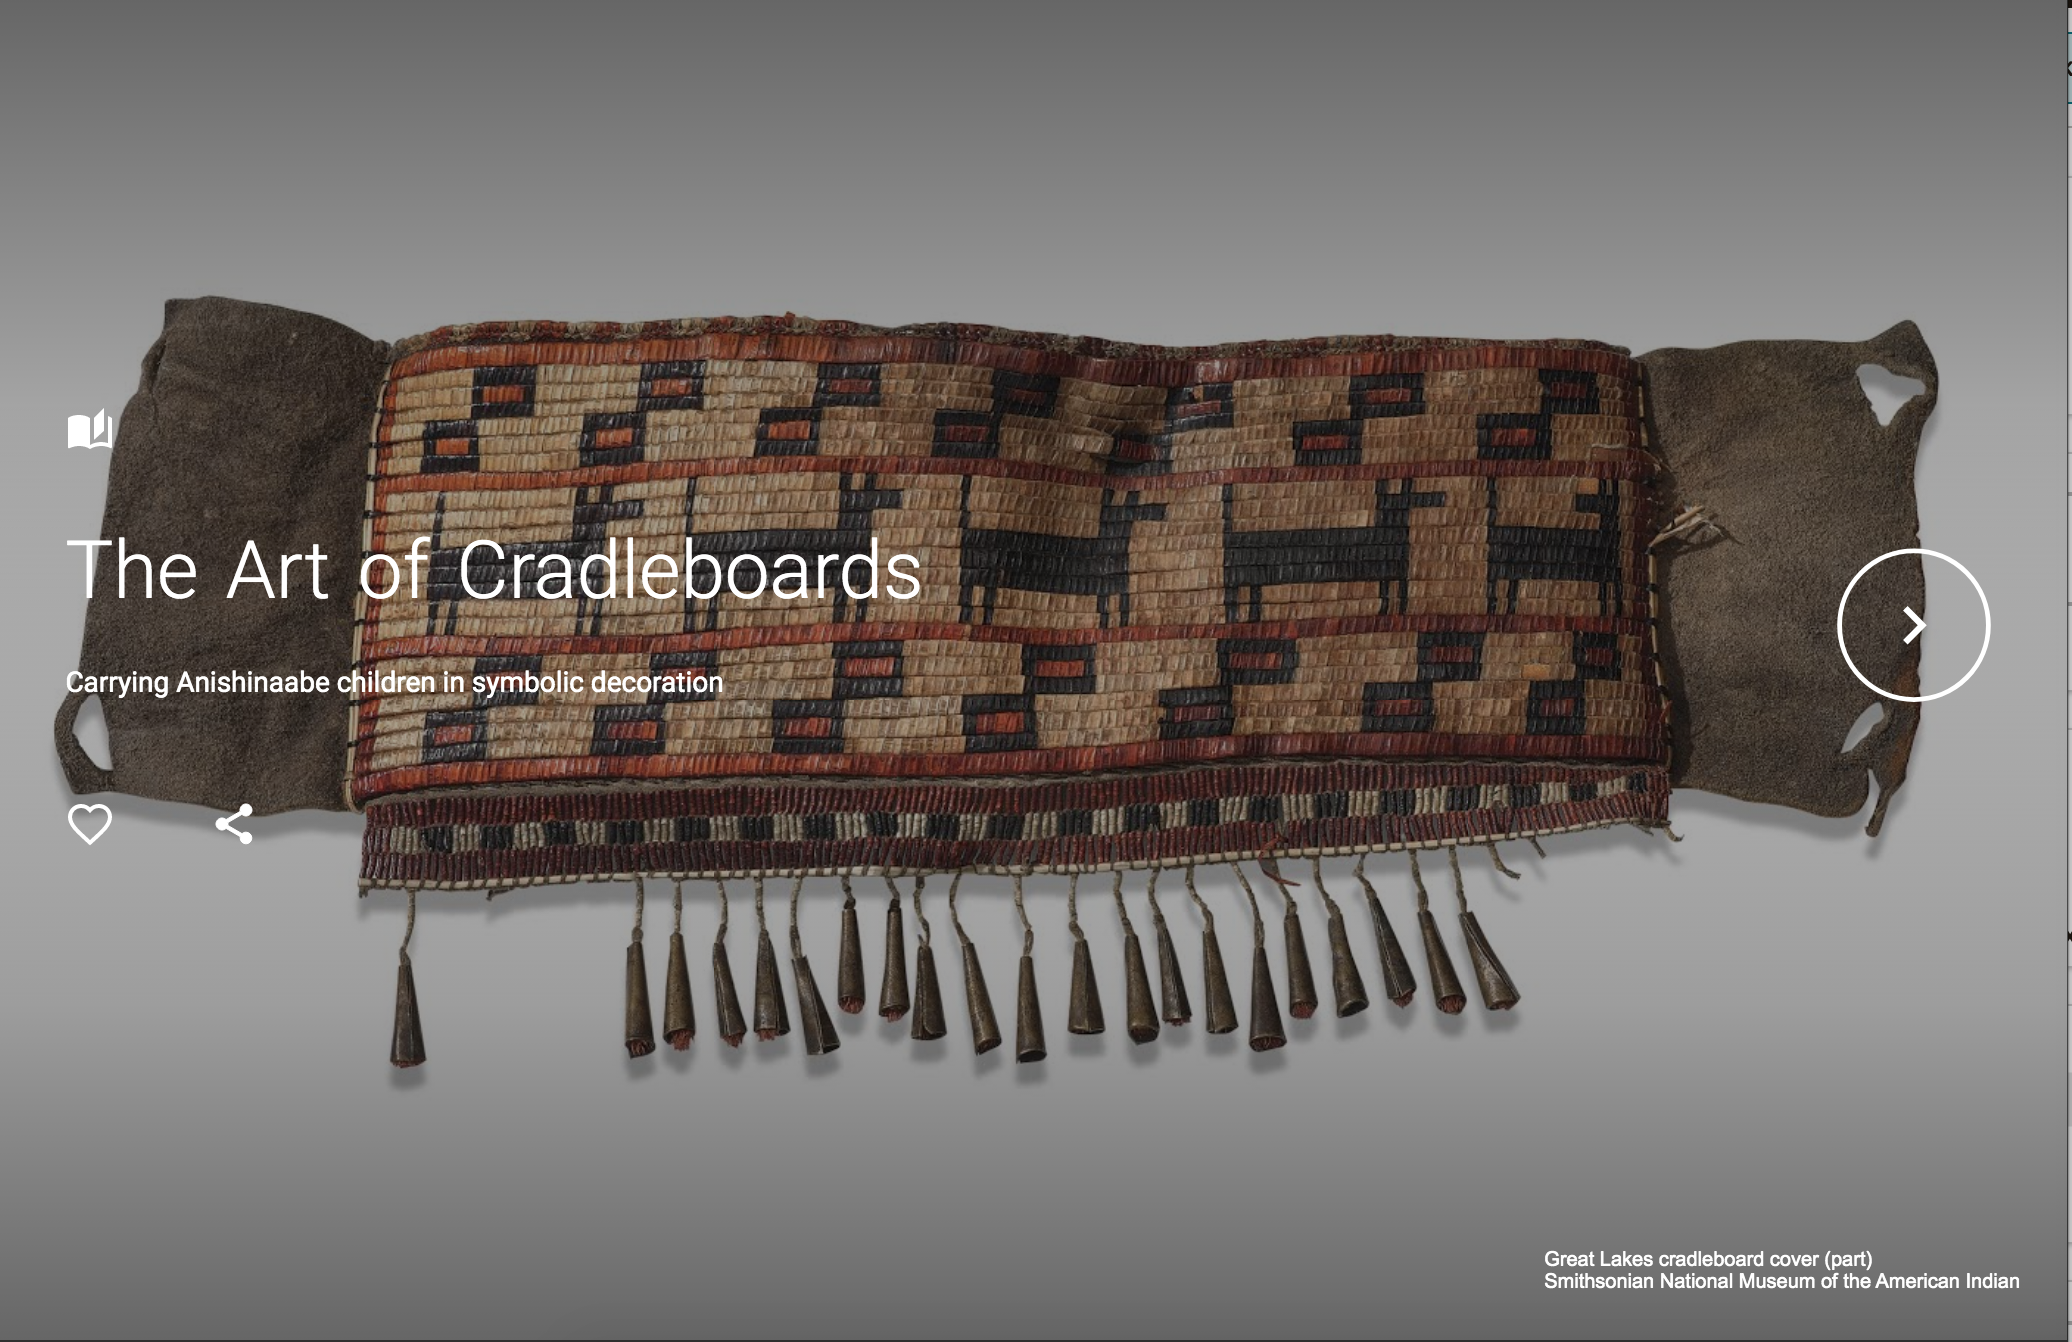 Interactive exhibition from the Smithsonian Museum of the American Indian about one cradleboard